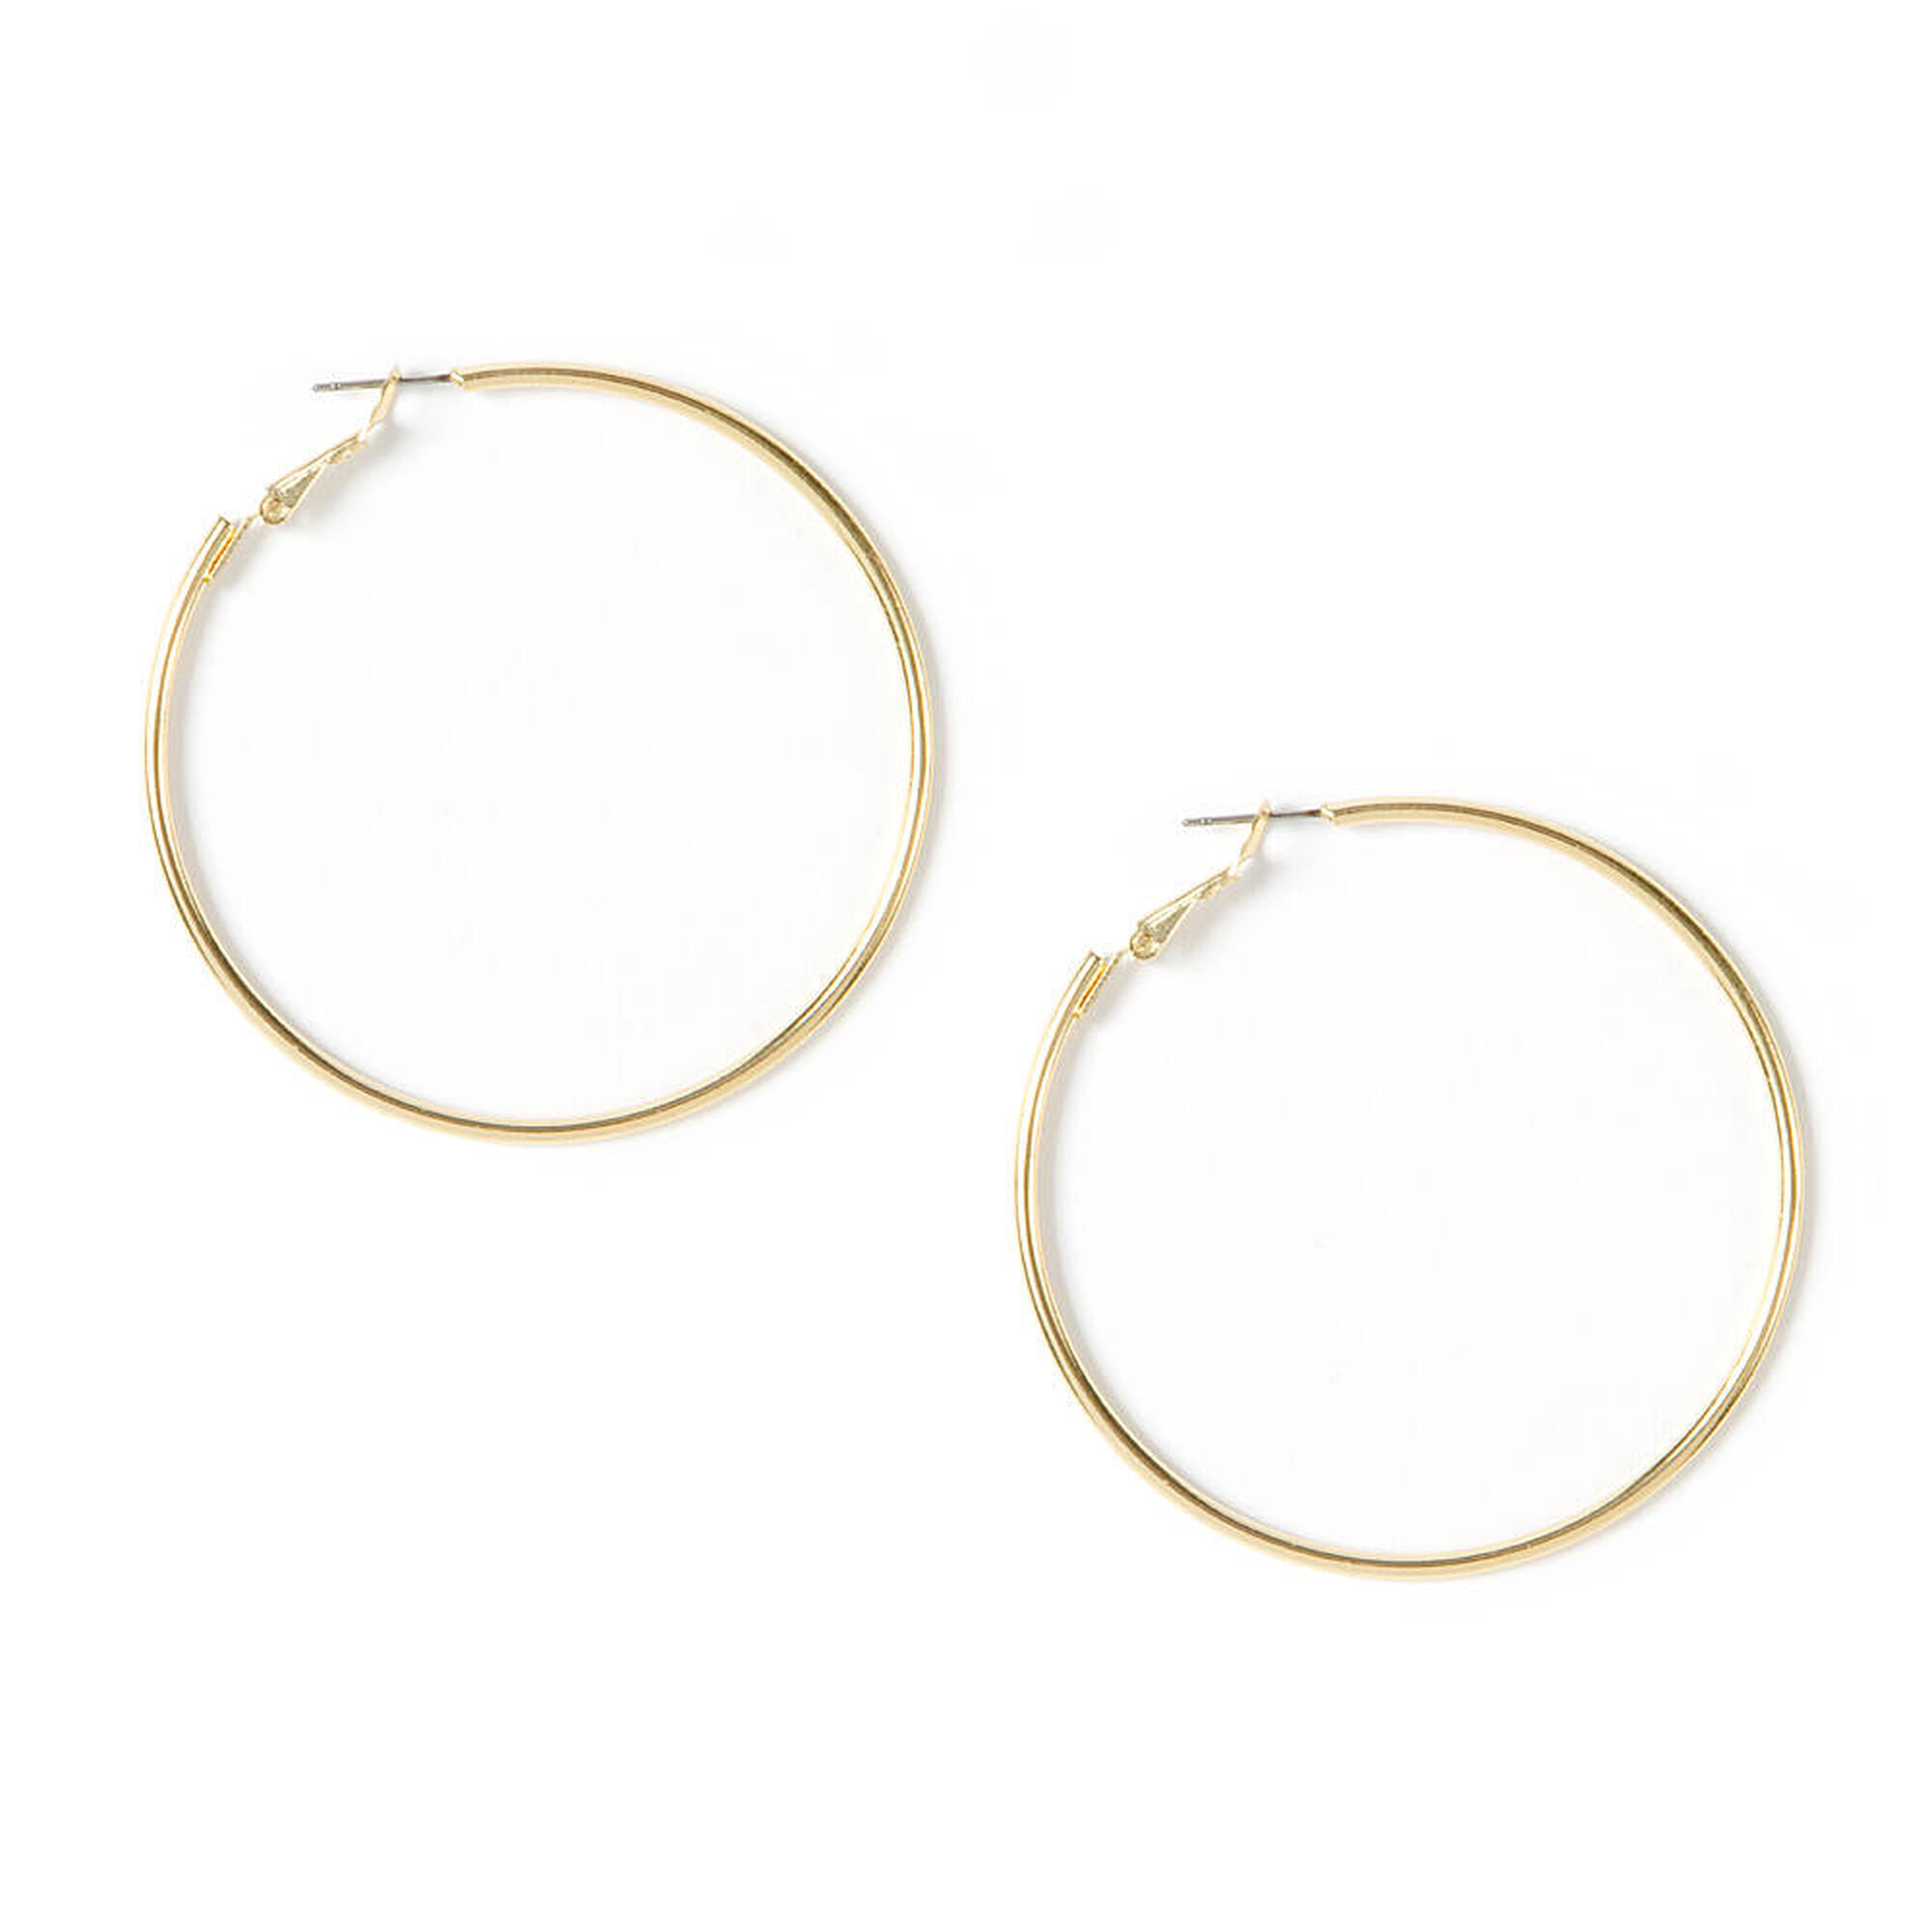 manufacturers gold at cz alibaba latest for stone com suppliers showroom and earrings simple designs women color earring